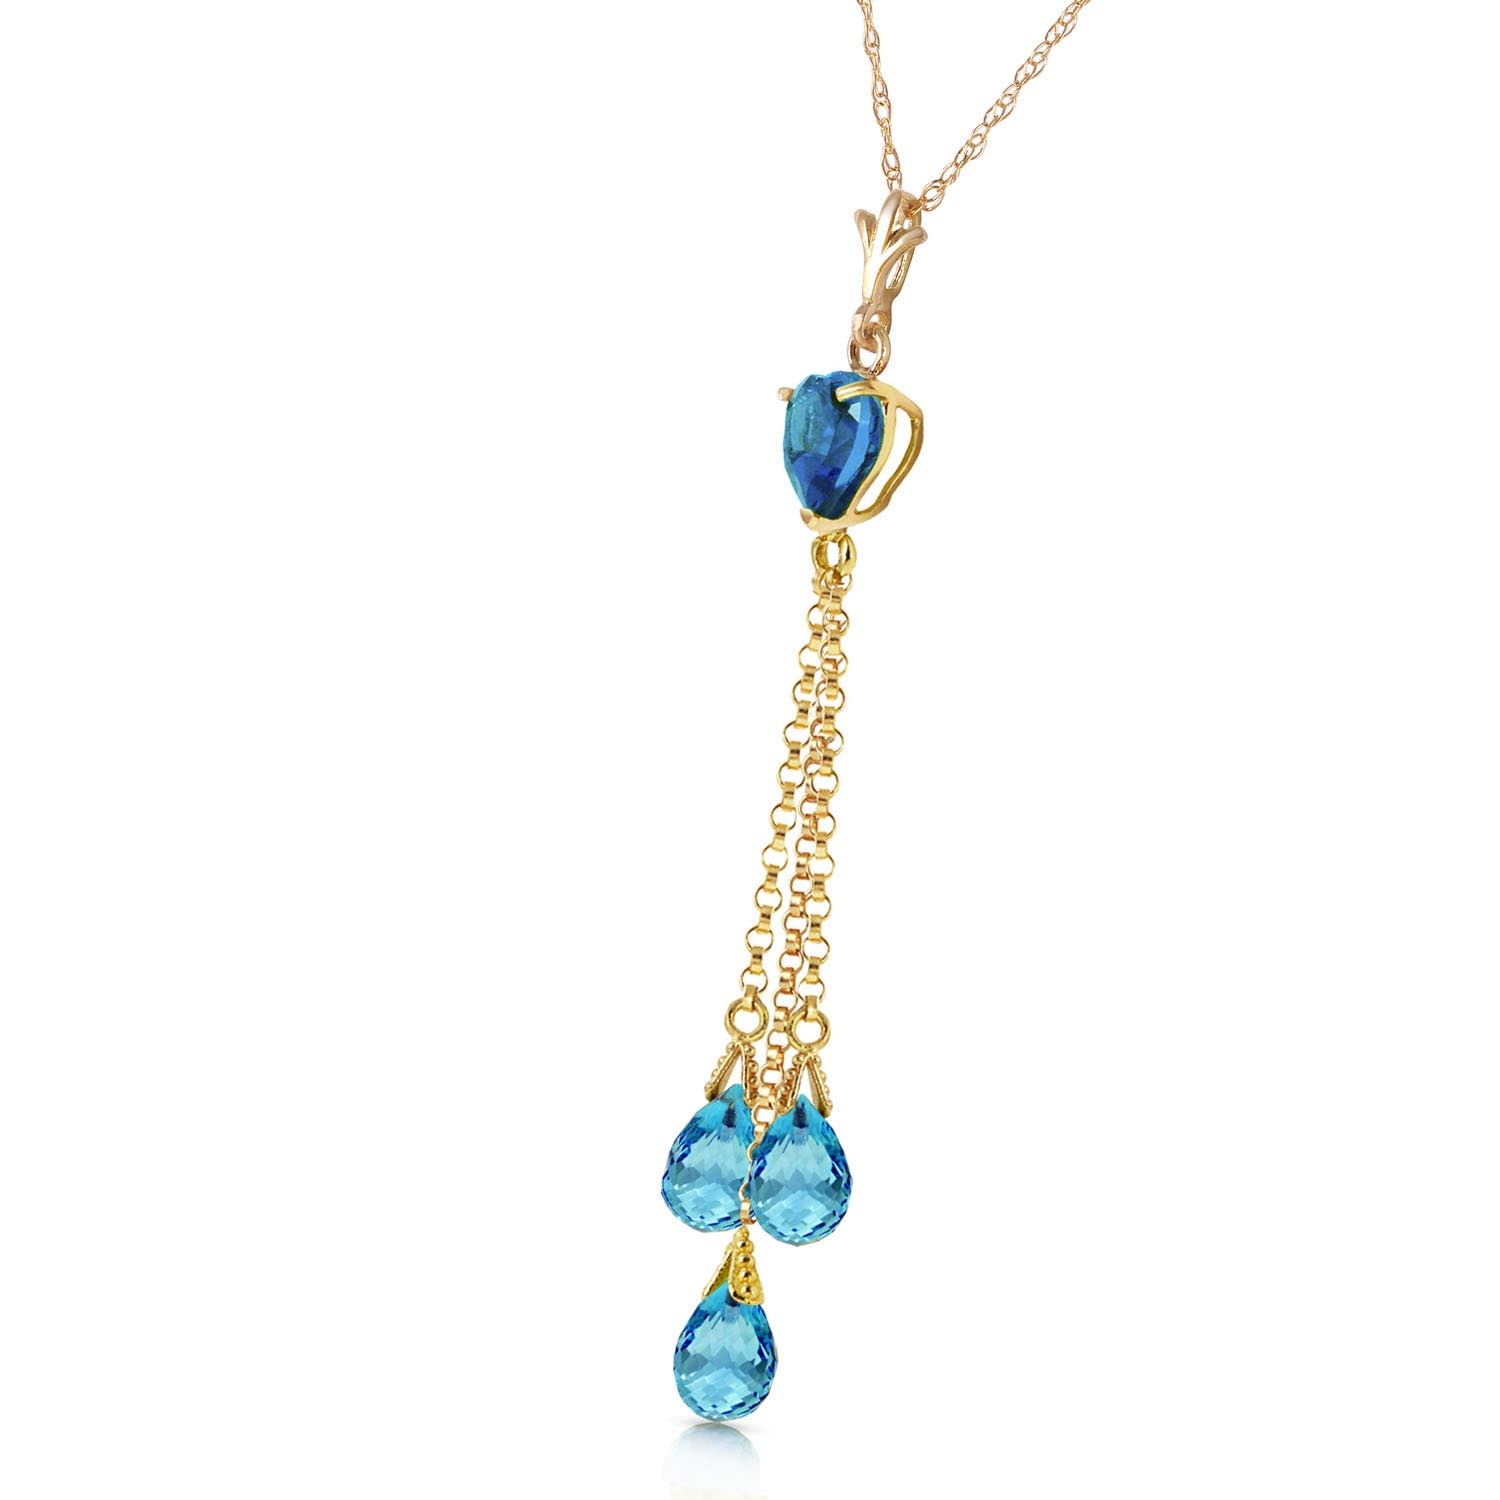 Blue Topaz Comet Tail Heart Pendant Necklace 4.75ctw in 9ct Gold